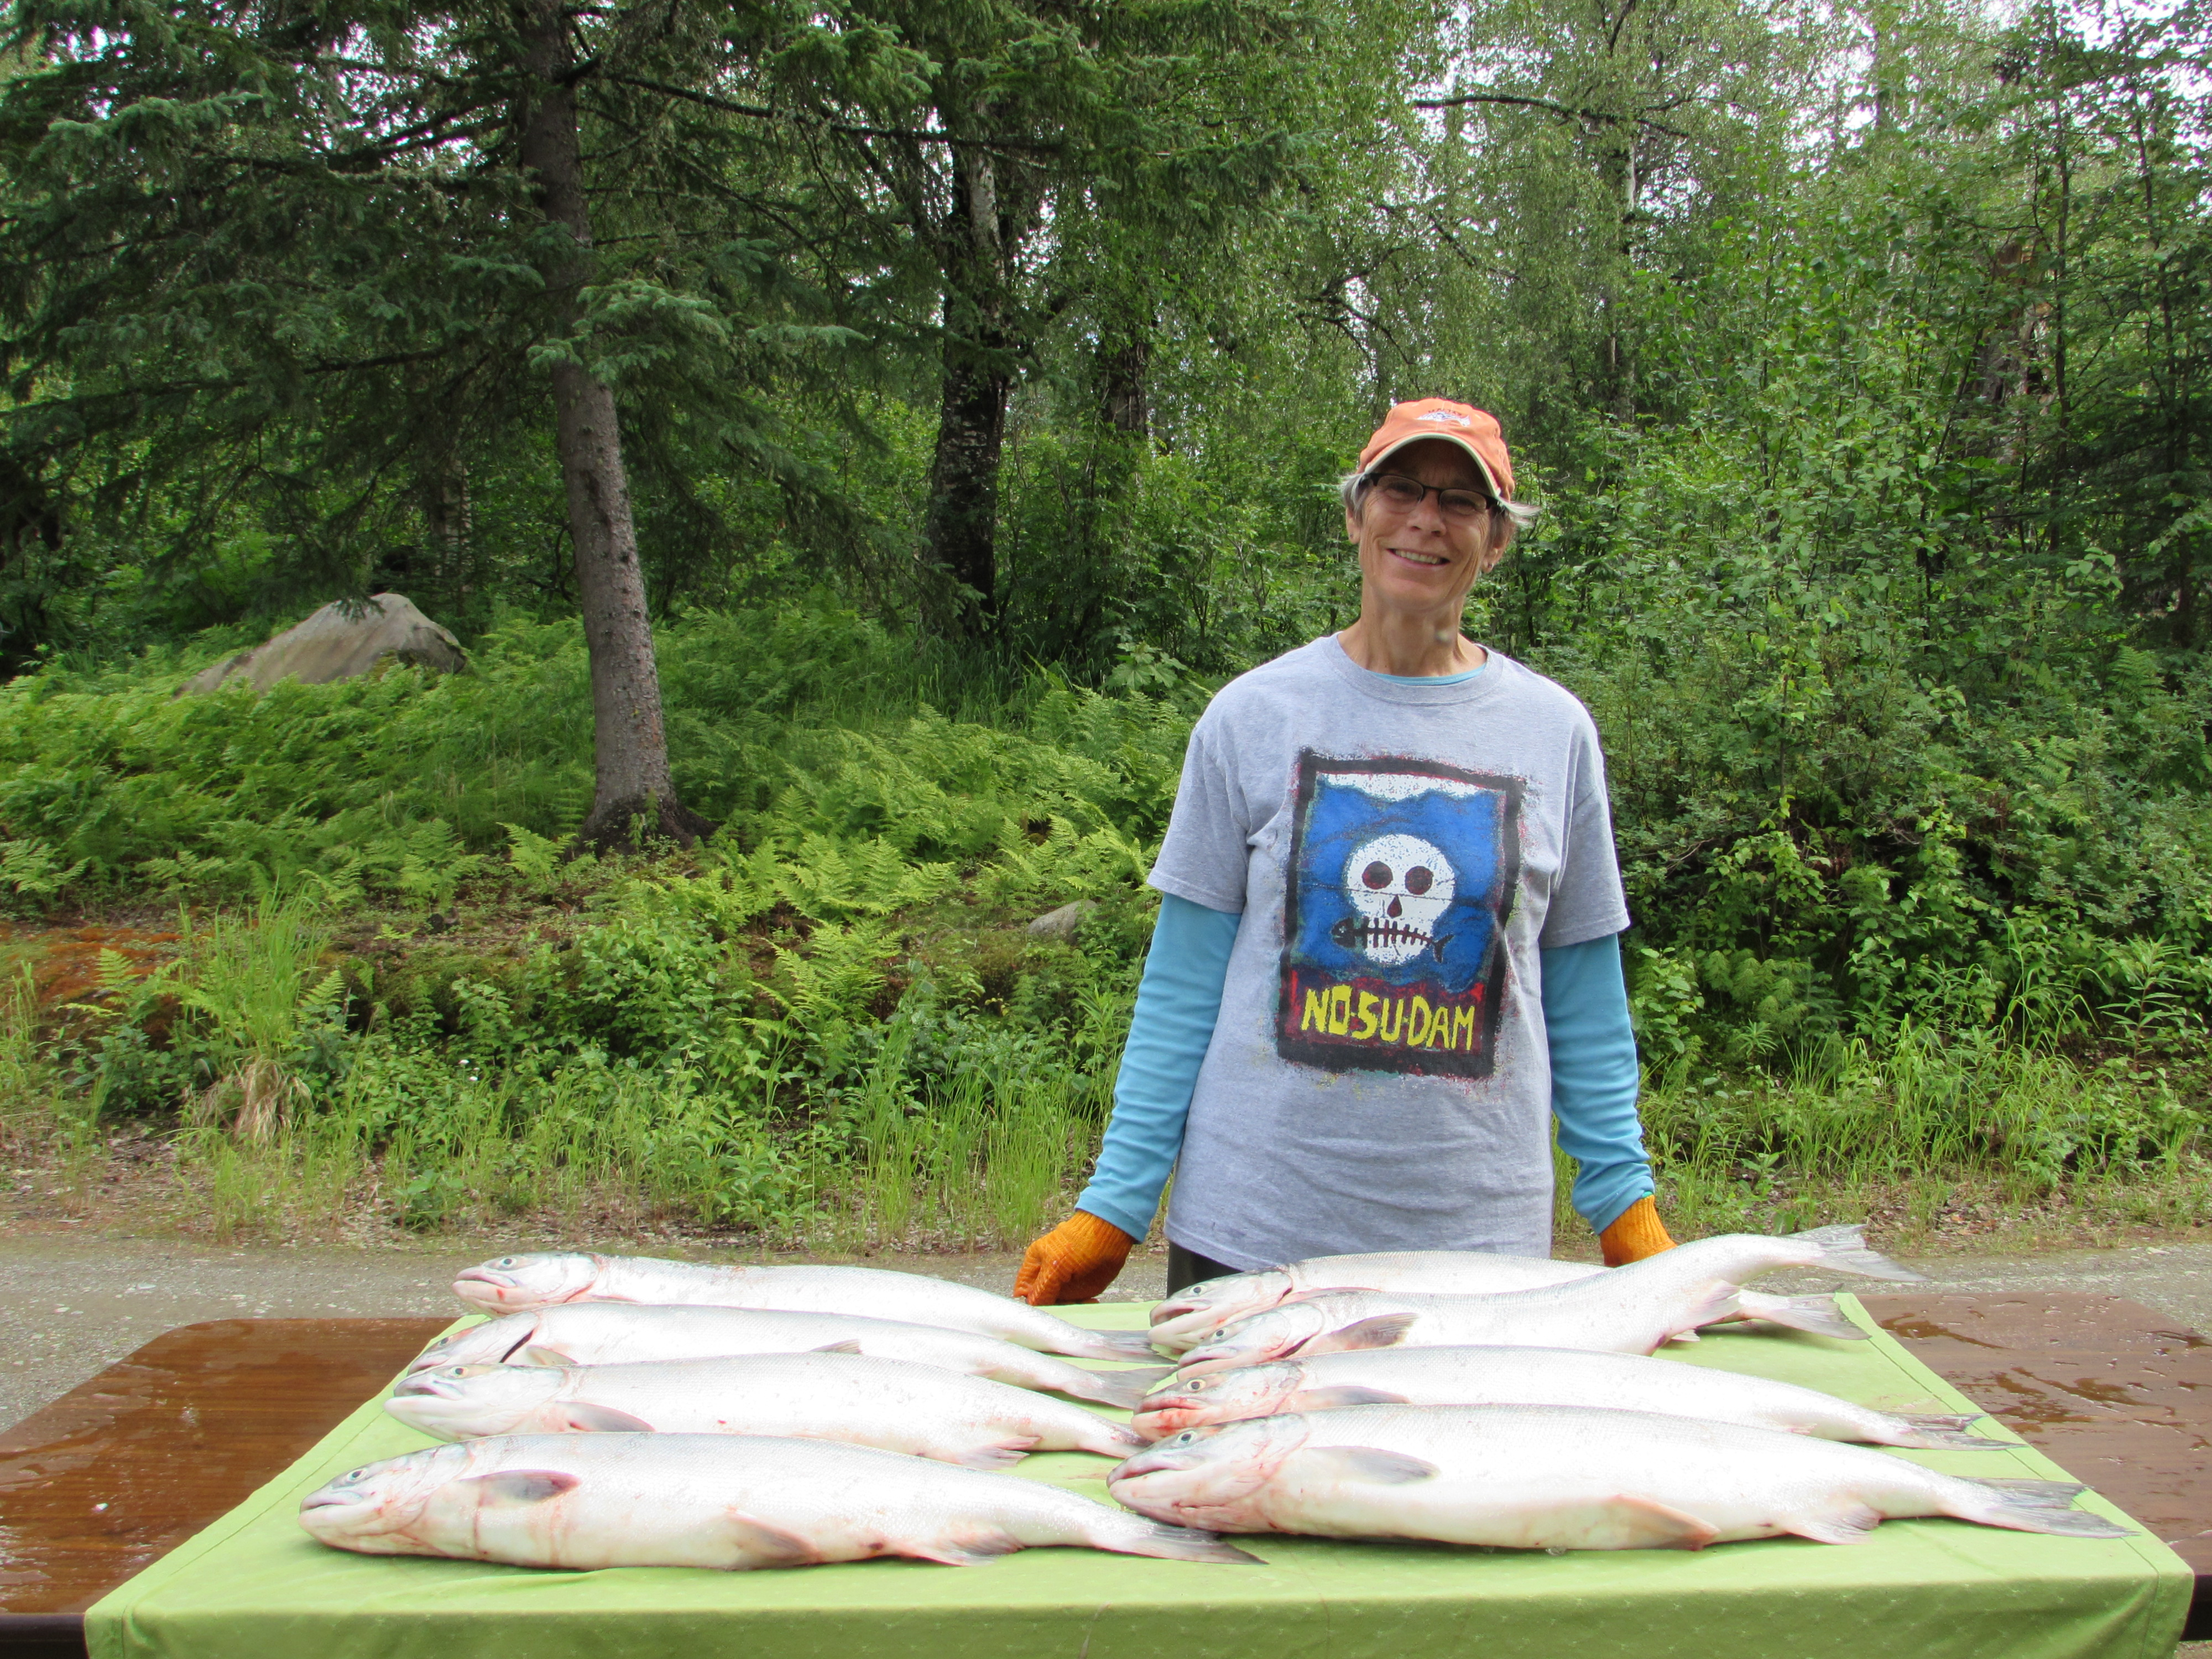 Talkeetna resident Diane Okonek sports a No Su Dam shirt as she gets ready to process sockeye salmon from the Susitna River.